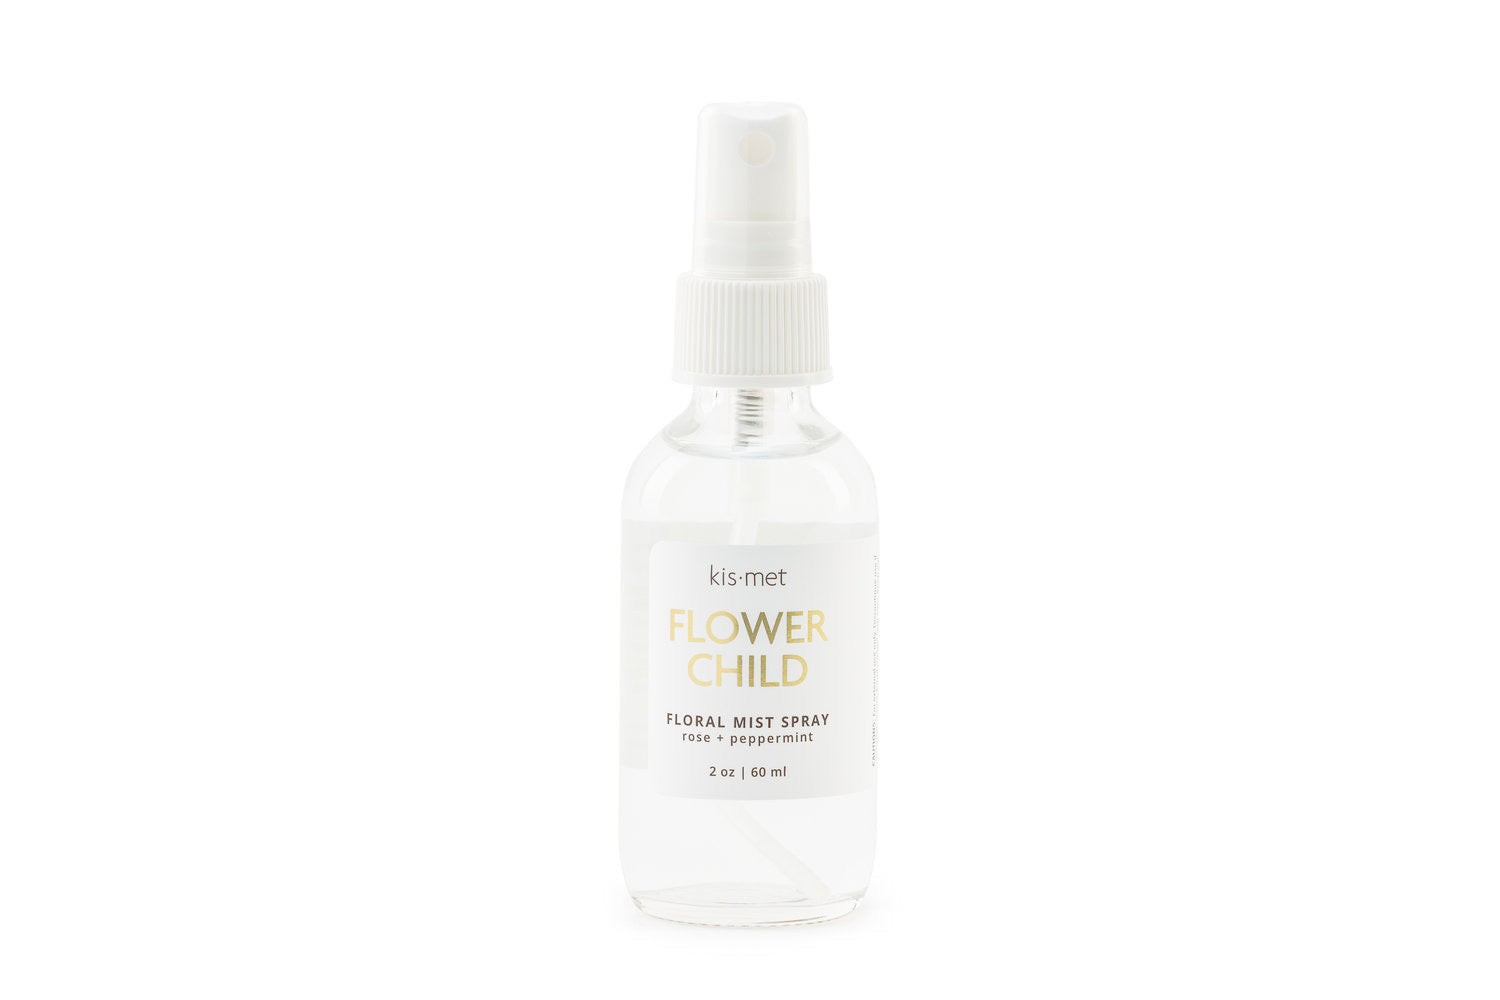 Kismet Flower Child - Floral Mist Spray